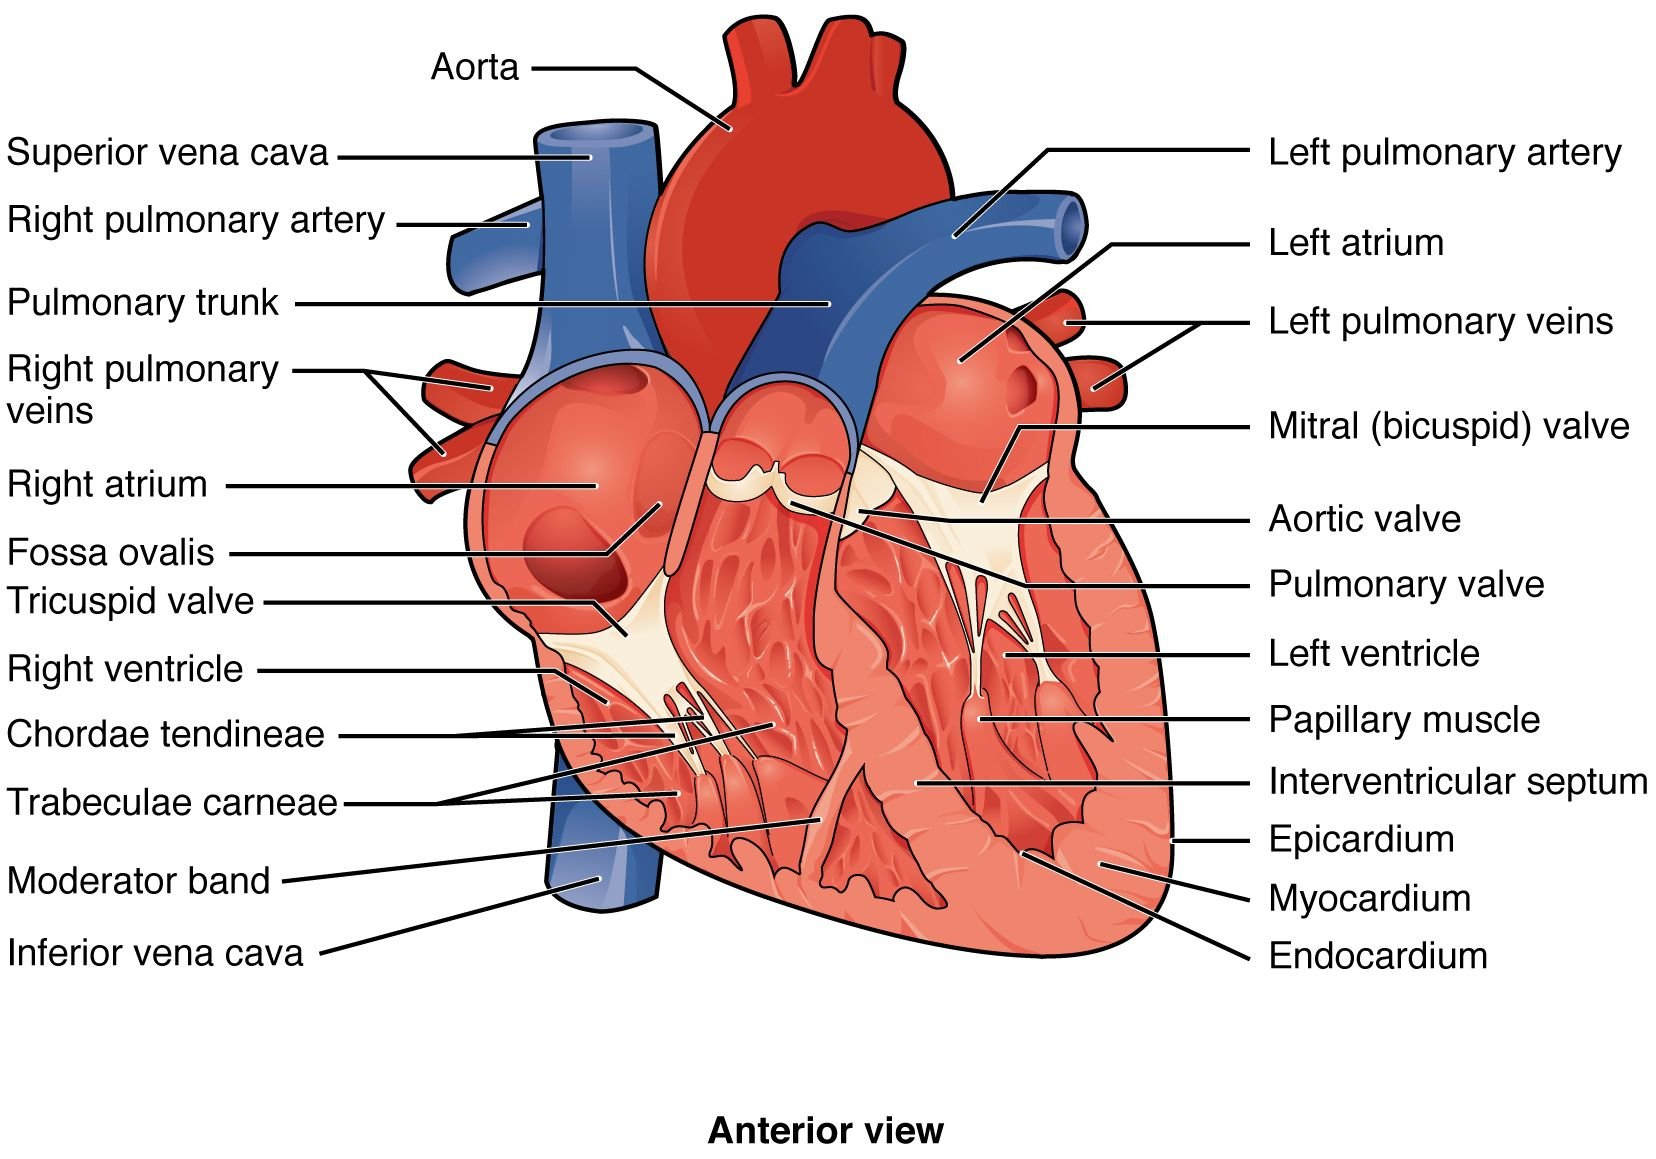 Heart Valves And The Cardiac Cycle Worksheet Answers